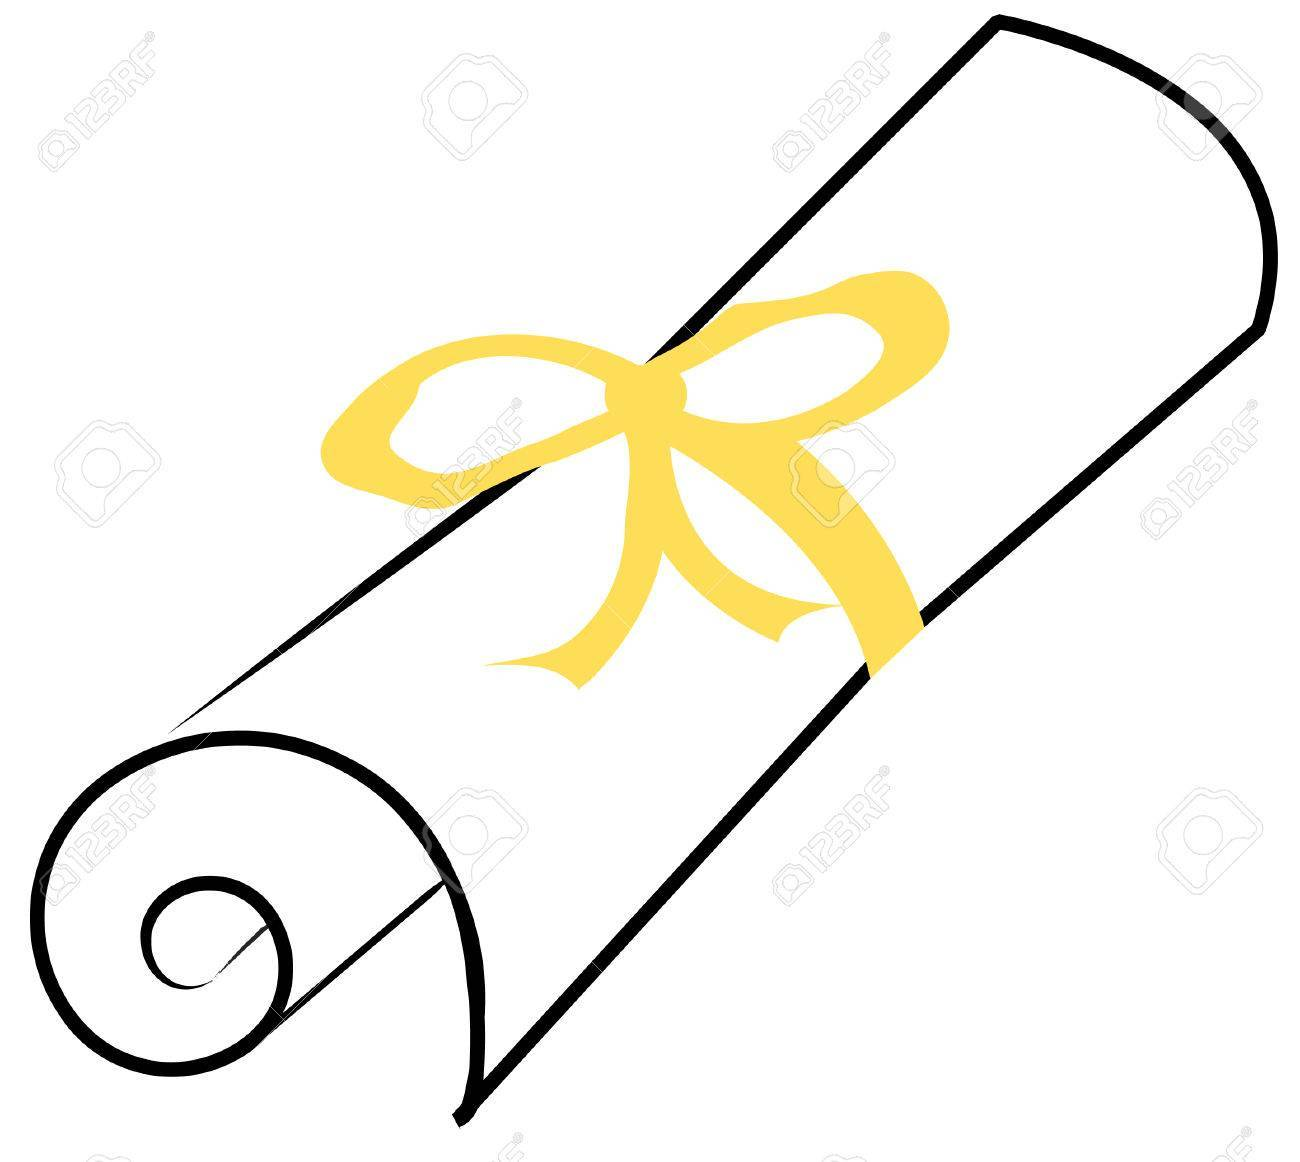 Graduation diploma or paper scroll with yellow ribbon.